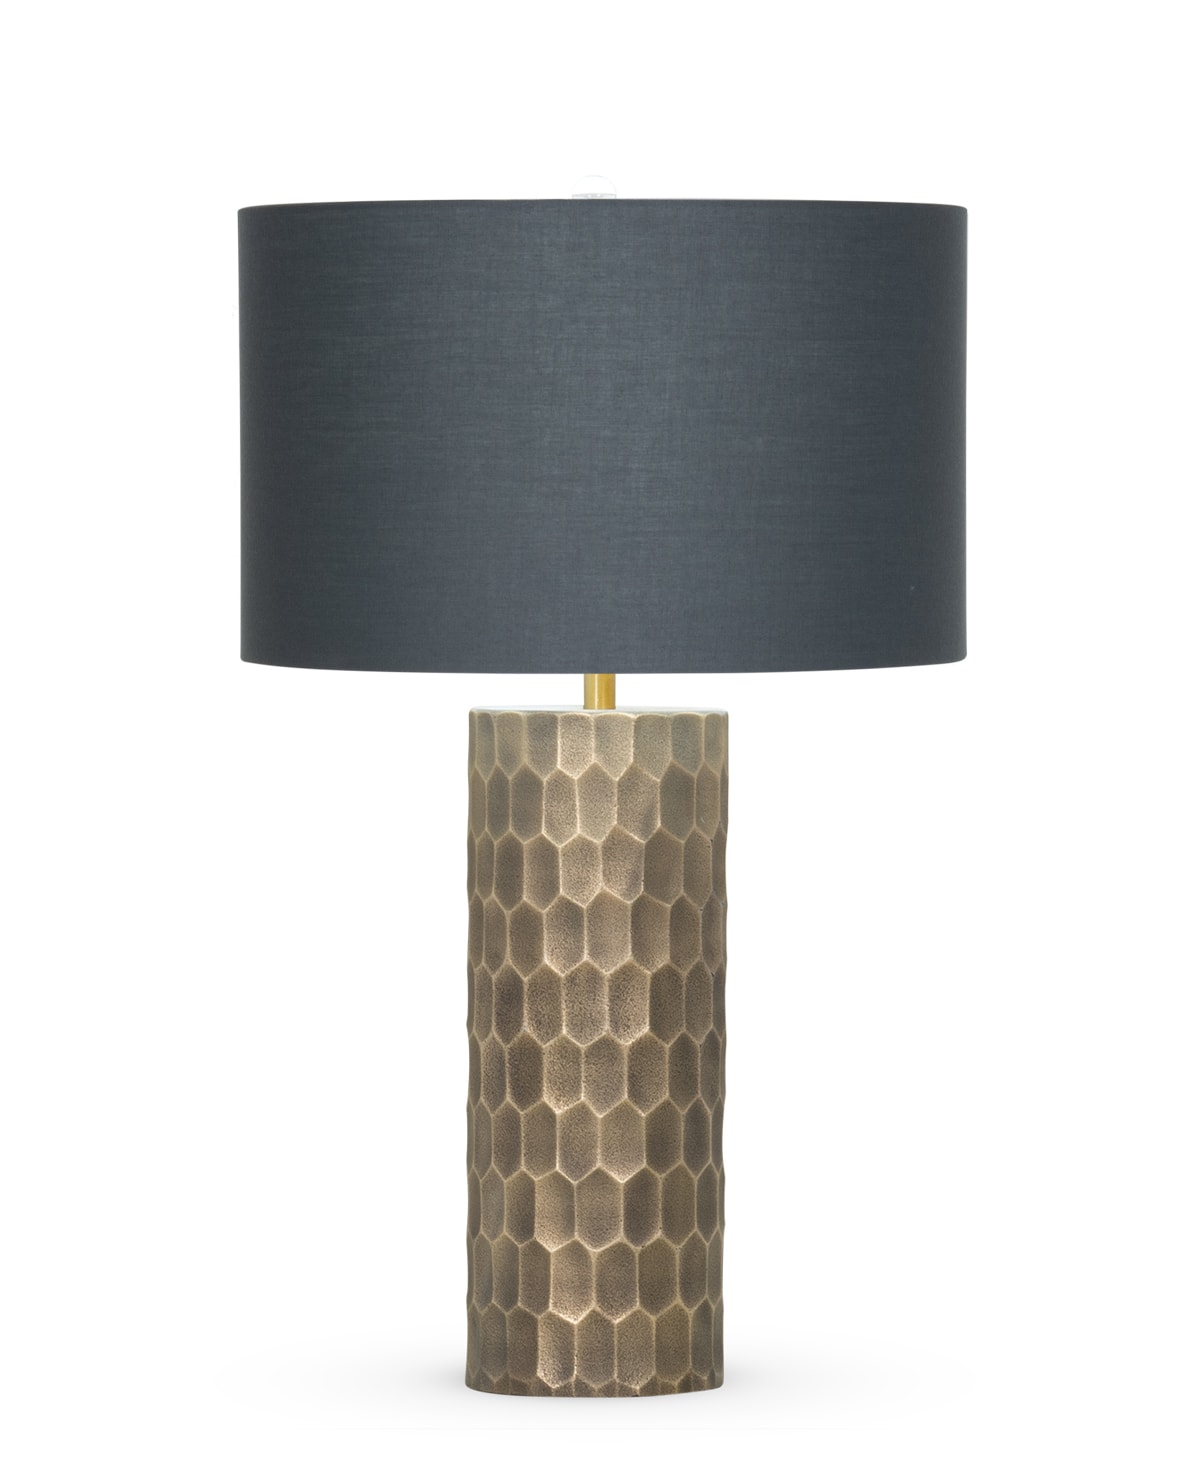 FlowDecor Ireland Table Lamp in mouth-blown glass with dark hand-etched brass plated finish and charcoal grey cotton drum shade (# 4402)